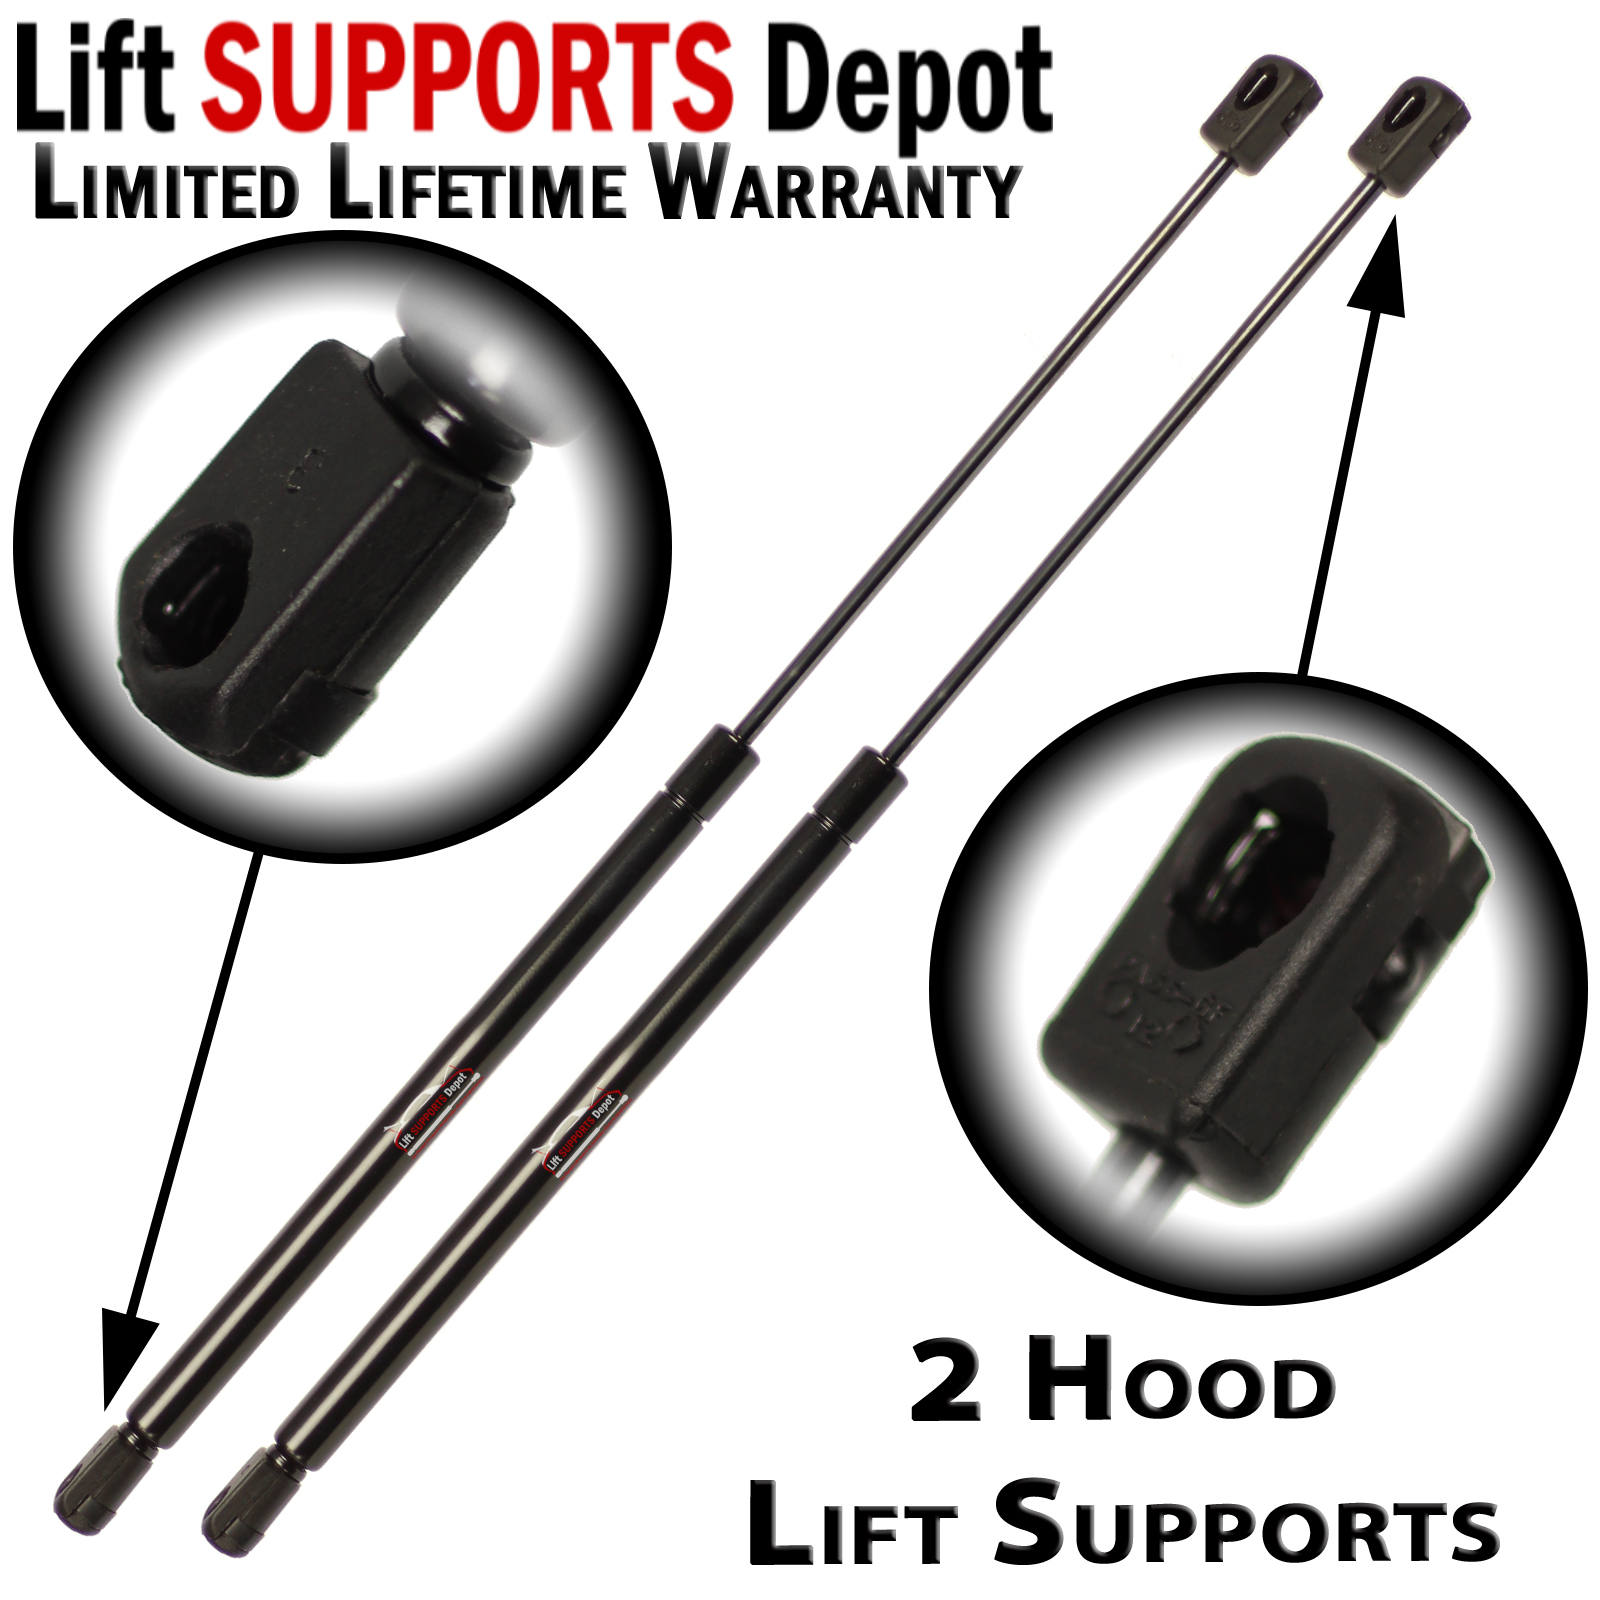 Qty (2) Fits Ford Explorer 2002 To 2010 Hood Lift Supports Struts Shocks  (exc 2001 To 2005 sport Trac) - PM3021